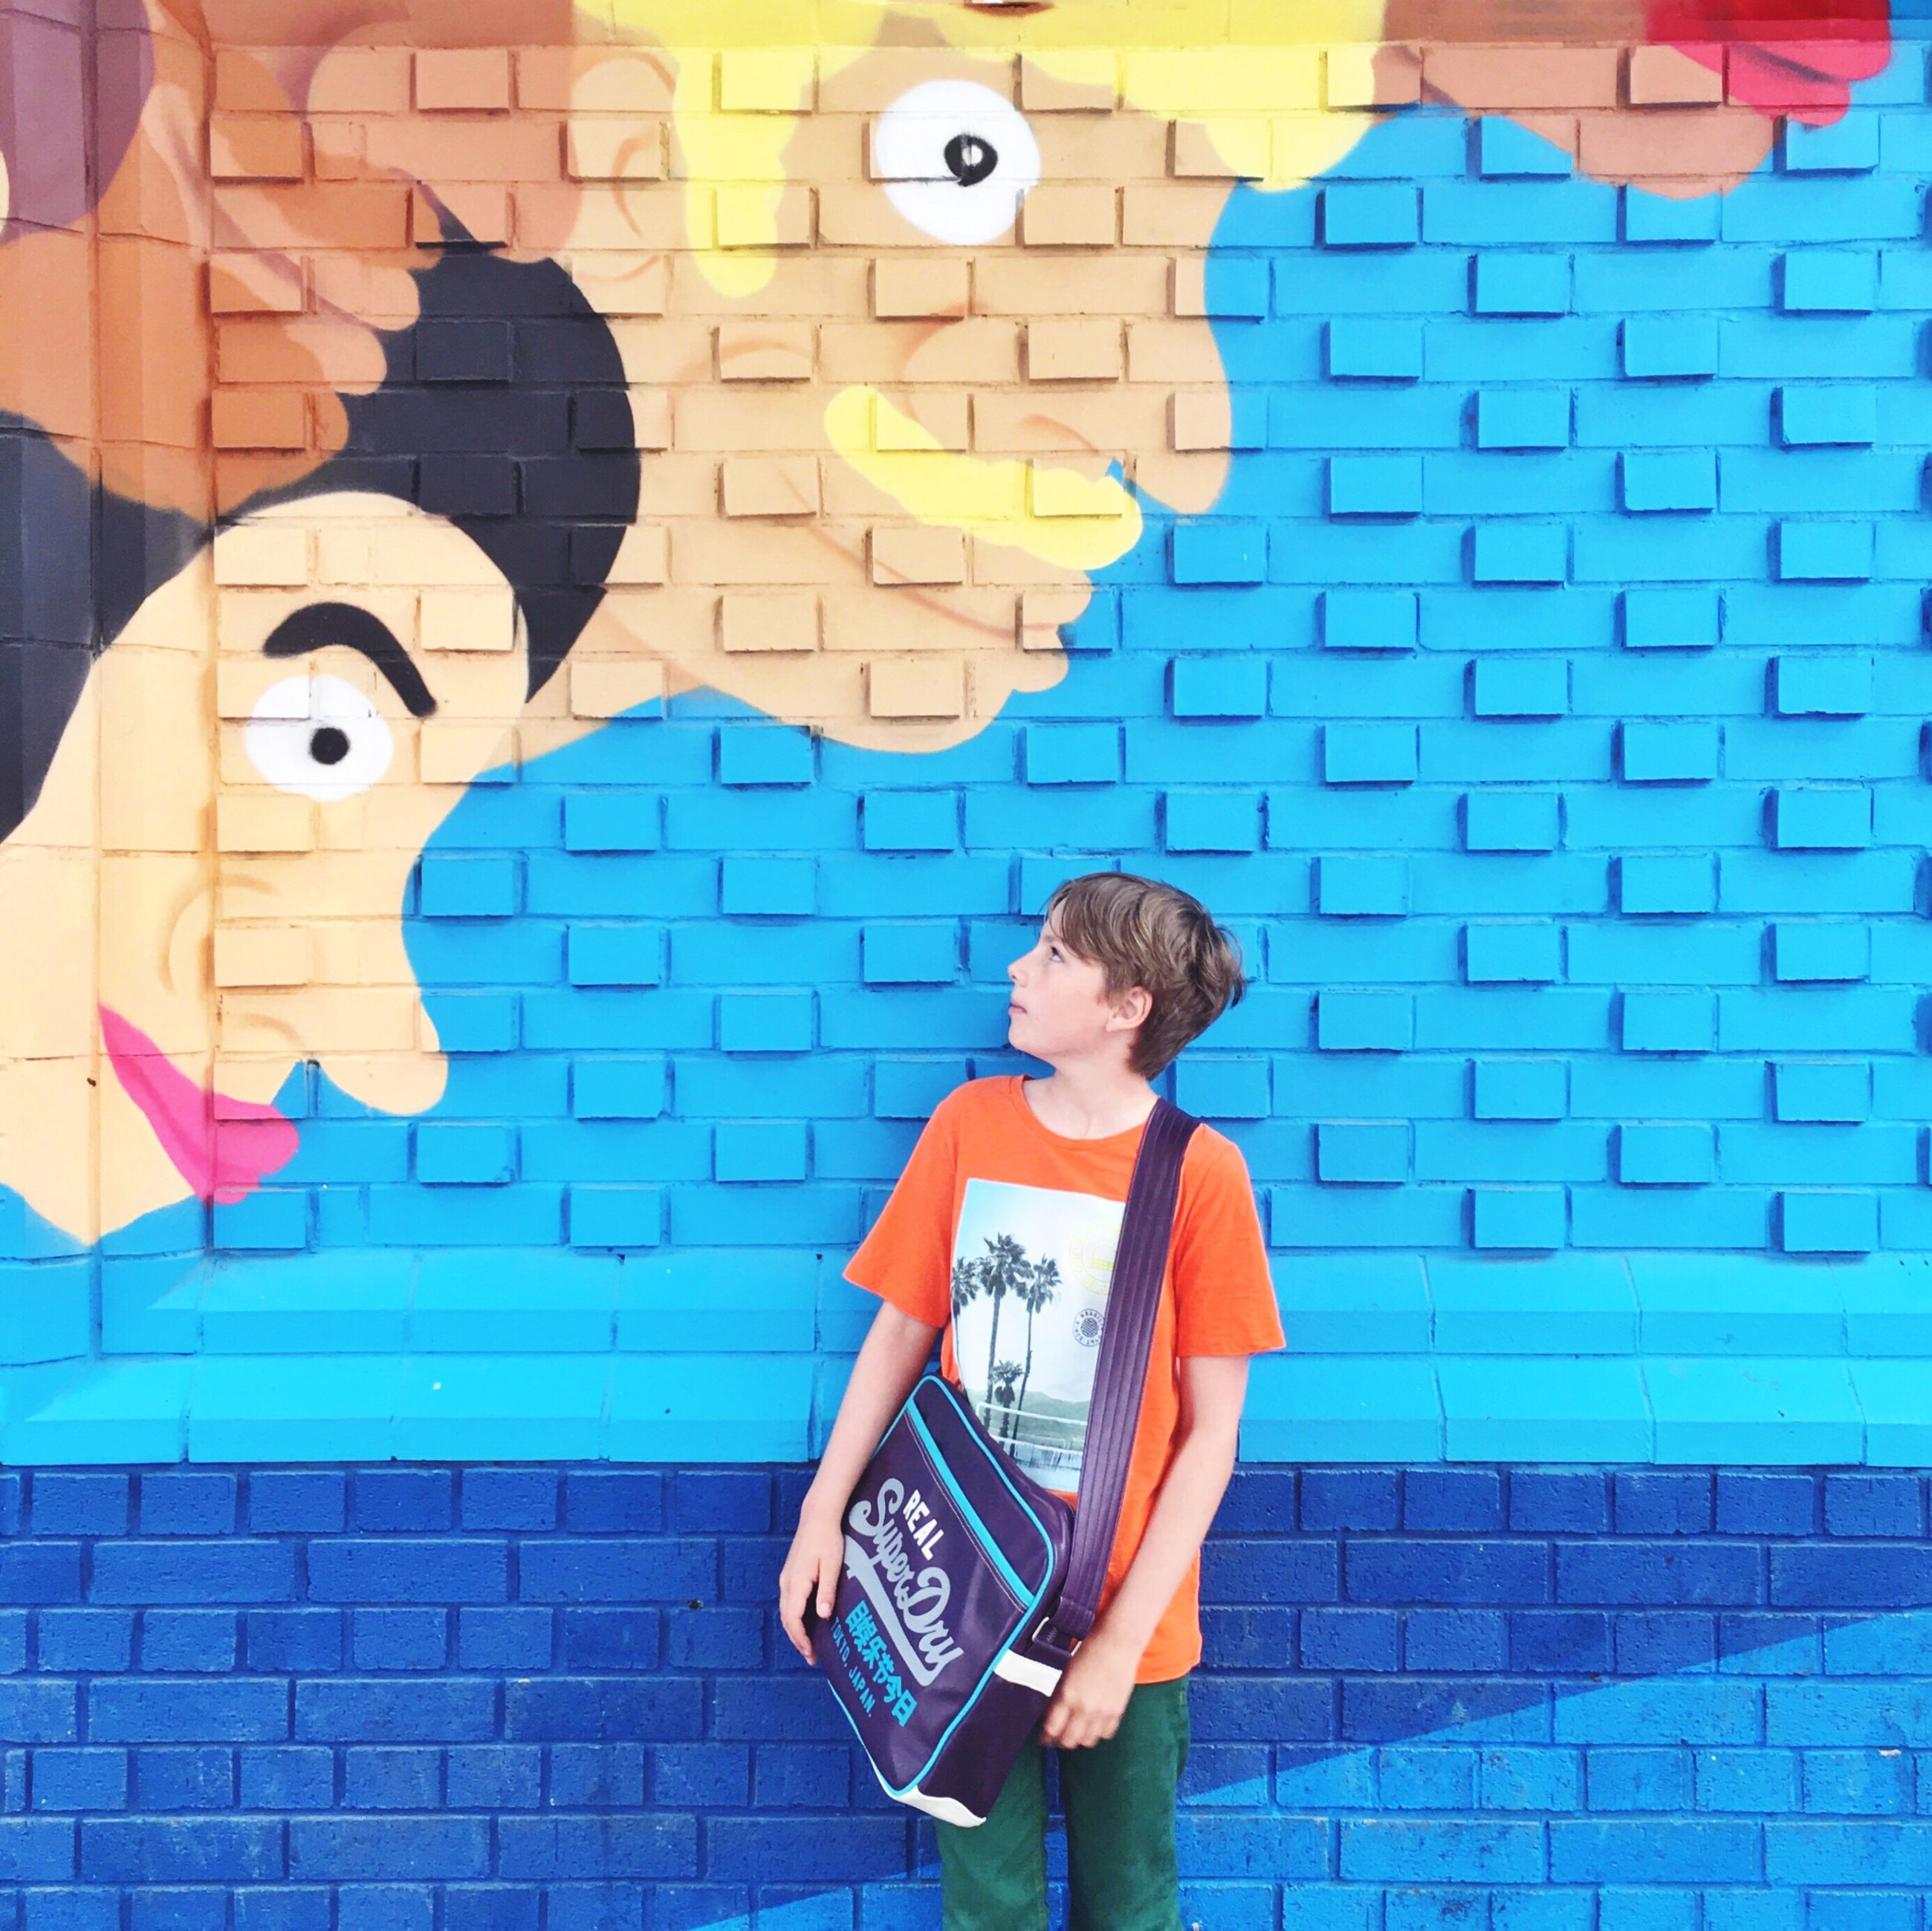 wall - building feature, lifestyles, casual clothing, leisure activity, blue, multi colored, art, brick wall, day, outdoors, portrait, fun